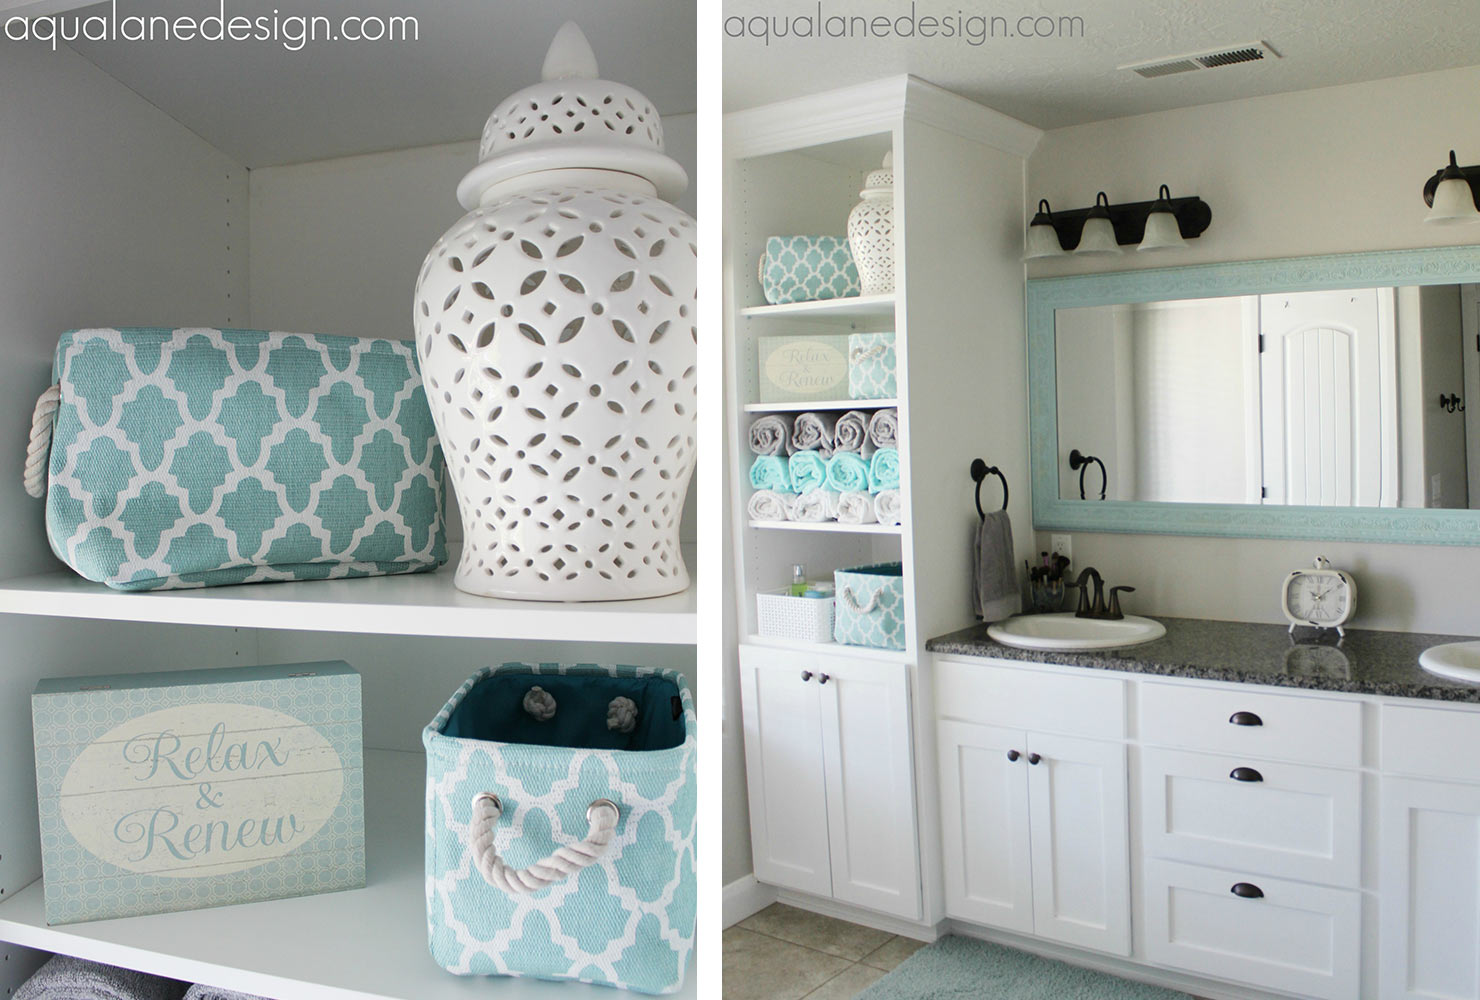 Bathroom Decoration Idea by Aqua Lane Designs - Shutterfly